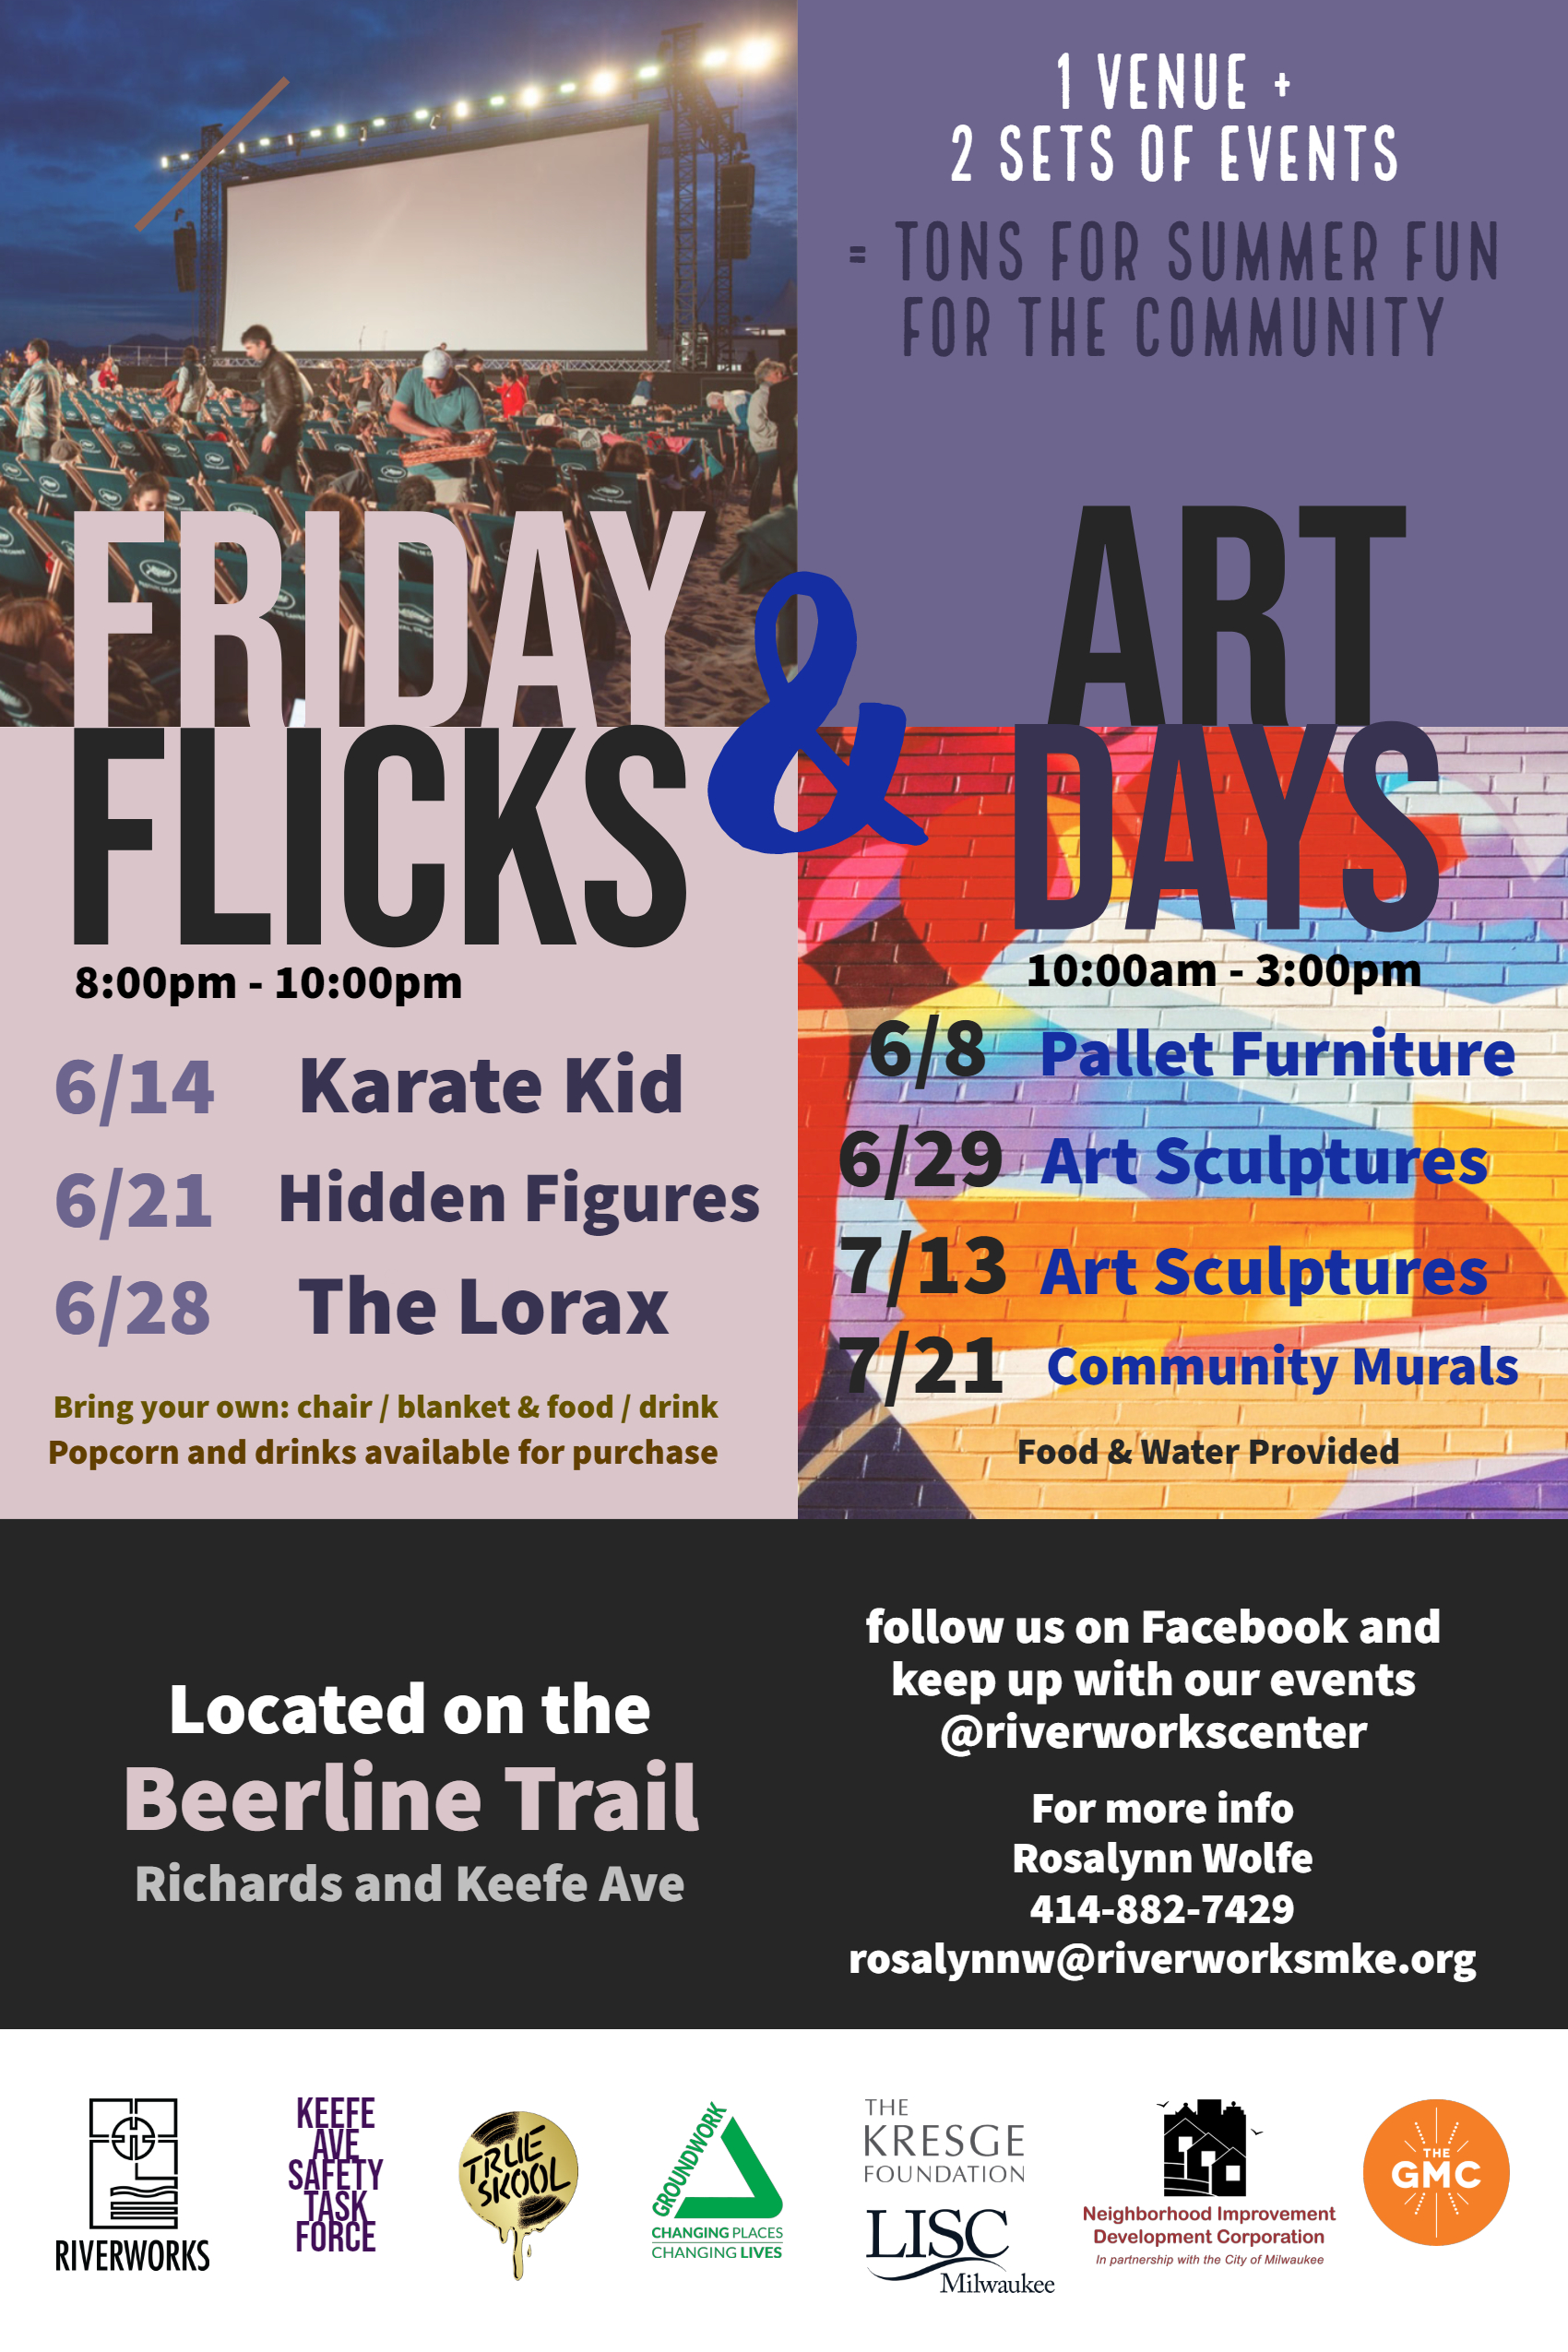 Riverworks, Groundwork Milwaukee and True Skool Hosts Art Days on the Beerline Trail